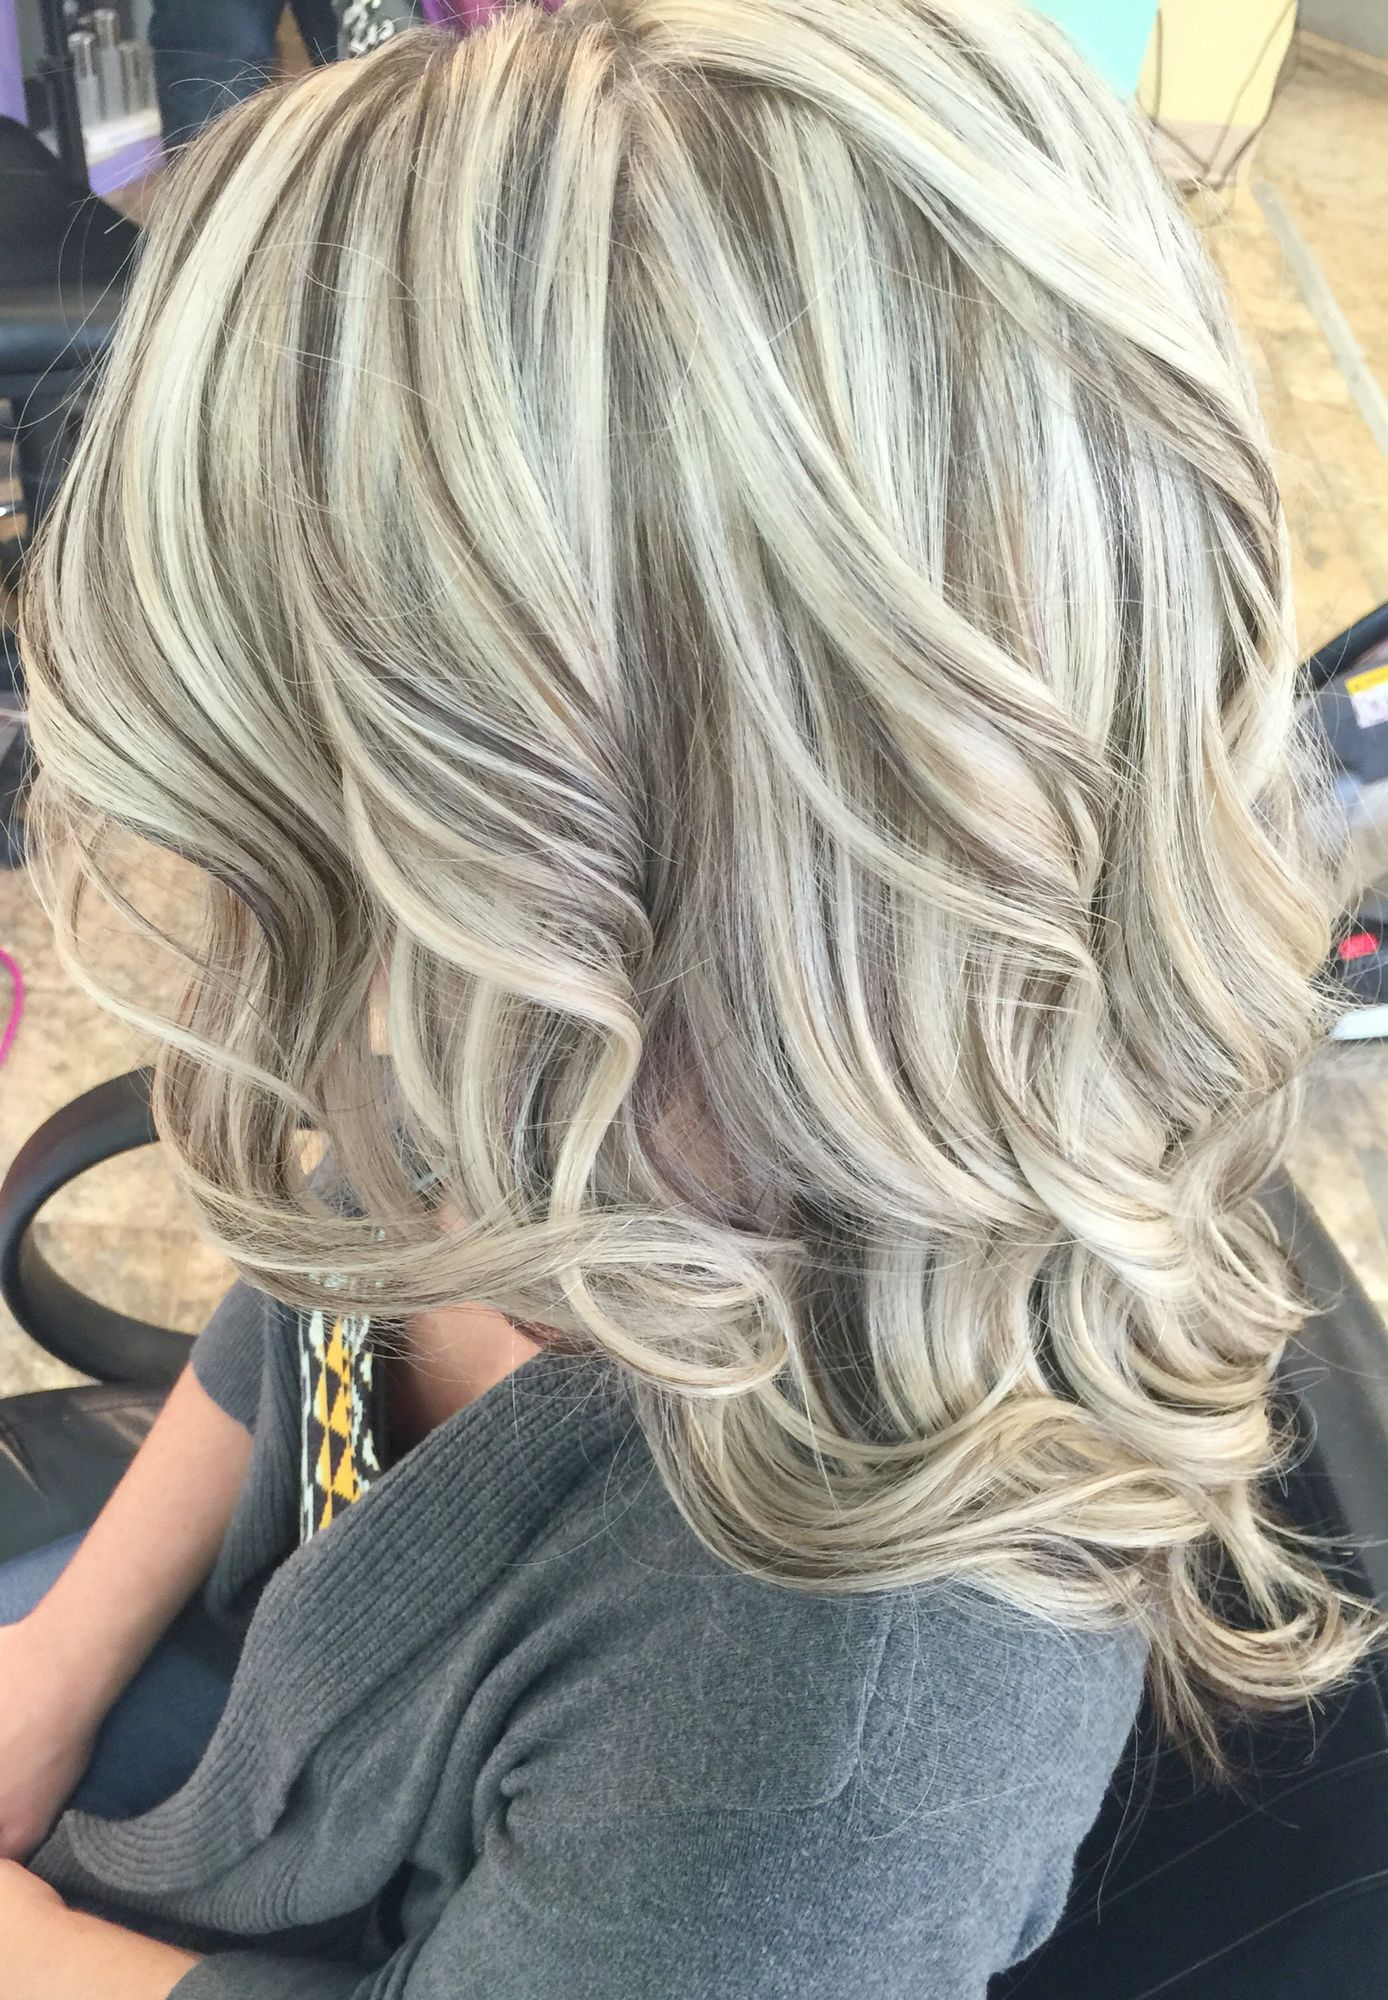 Cool blonde with lowlights kenracolor lowlights